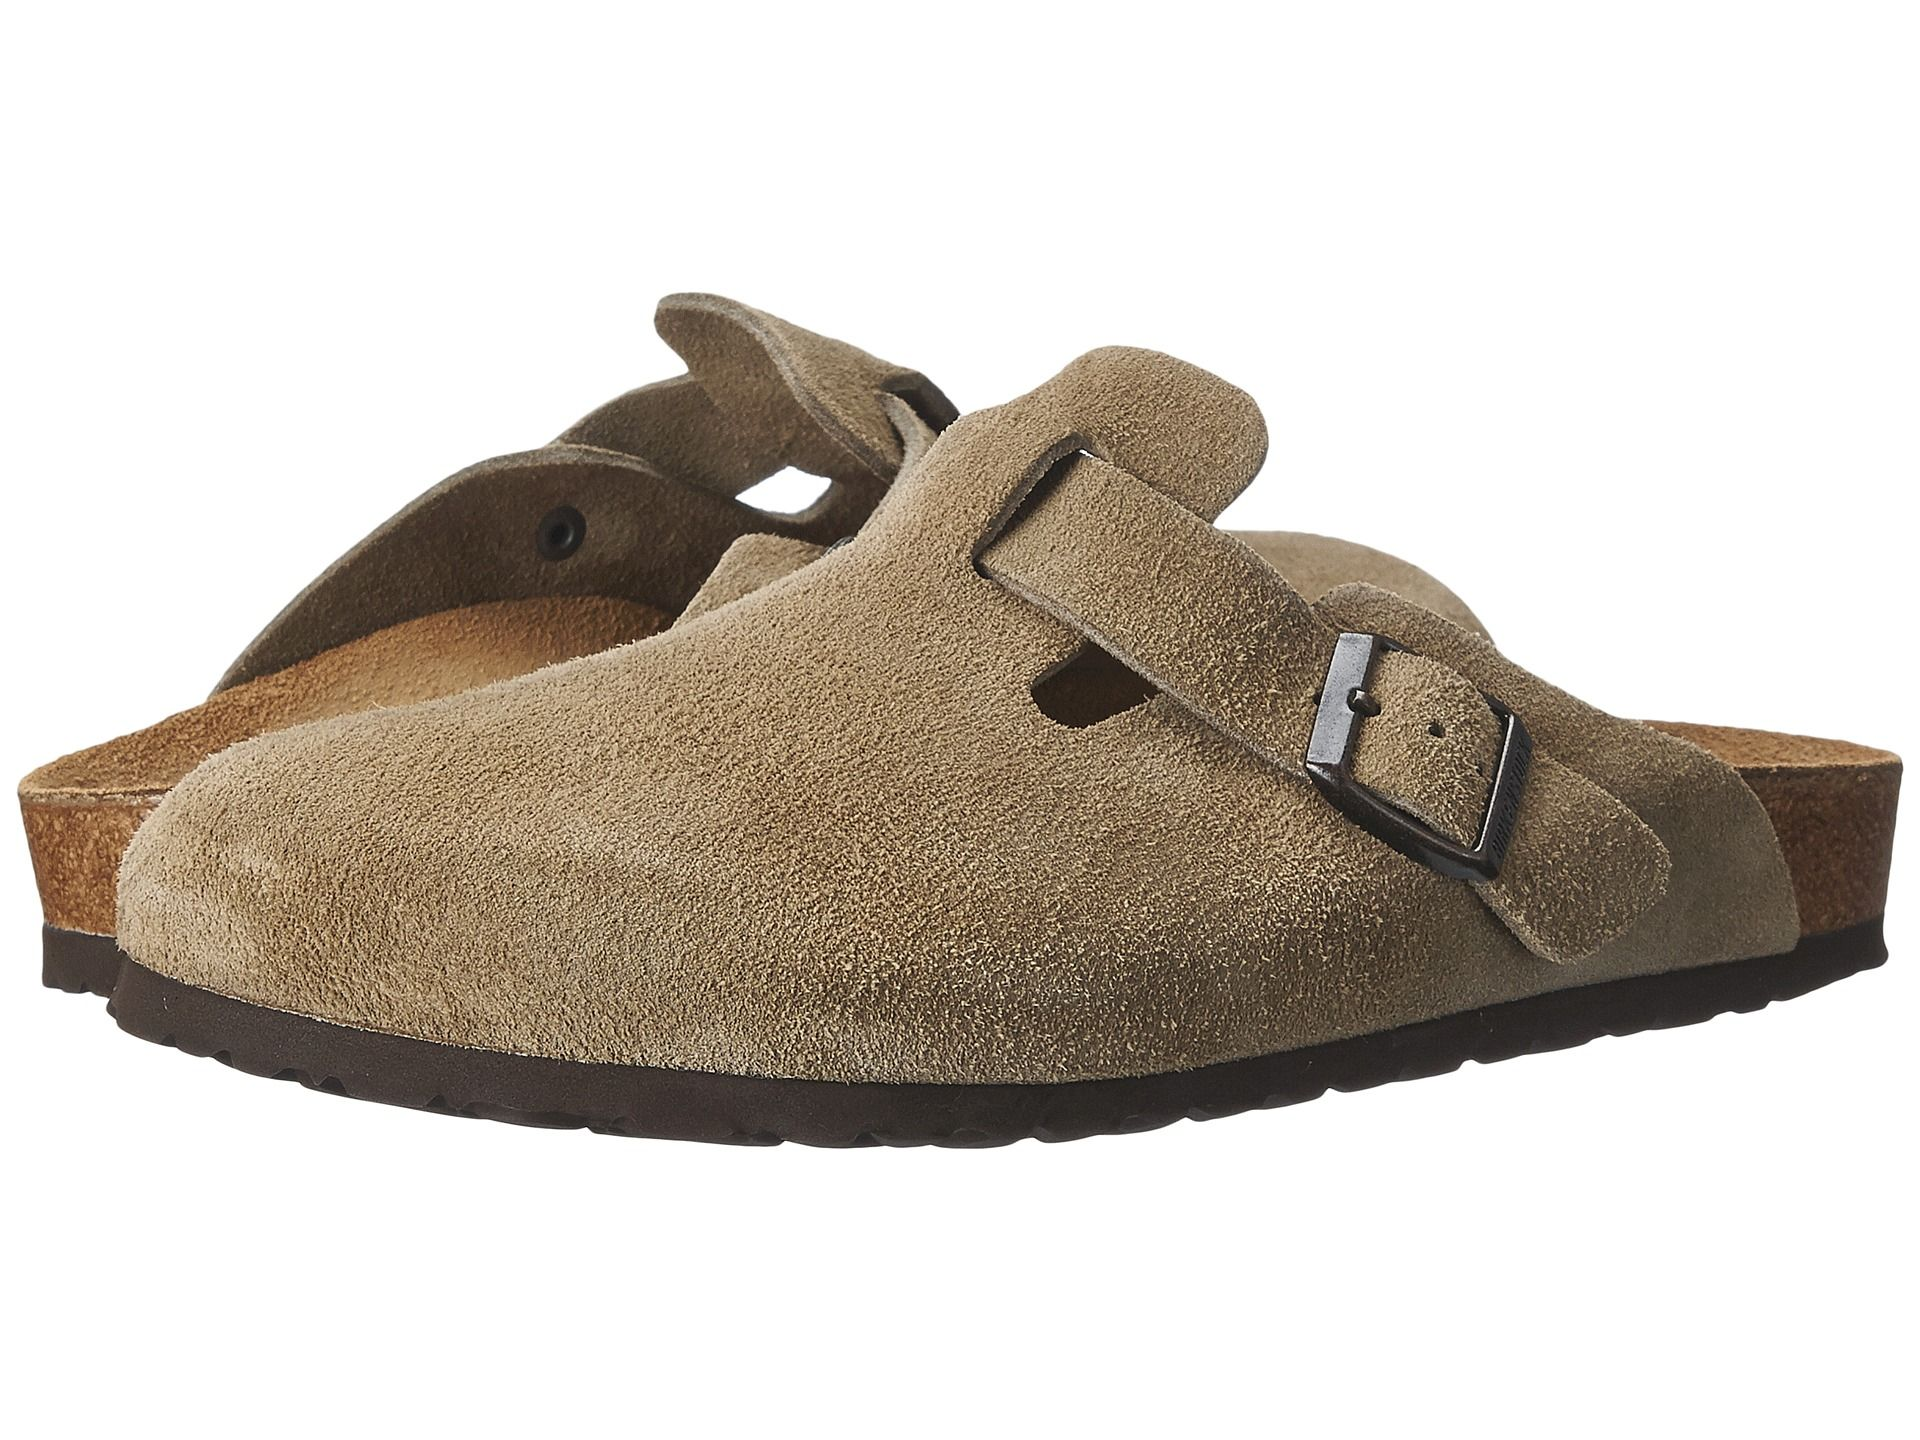 6355ff7cec71 Shoes from the 90s you forgot you were obsessed with- Birkenstock Clogs